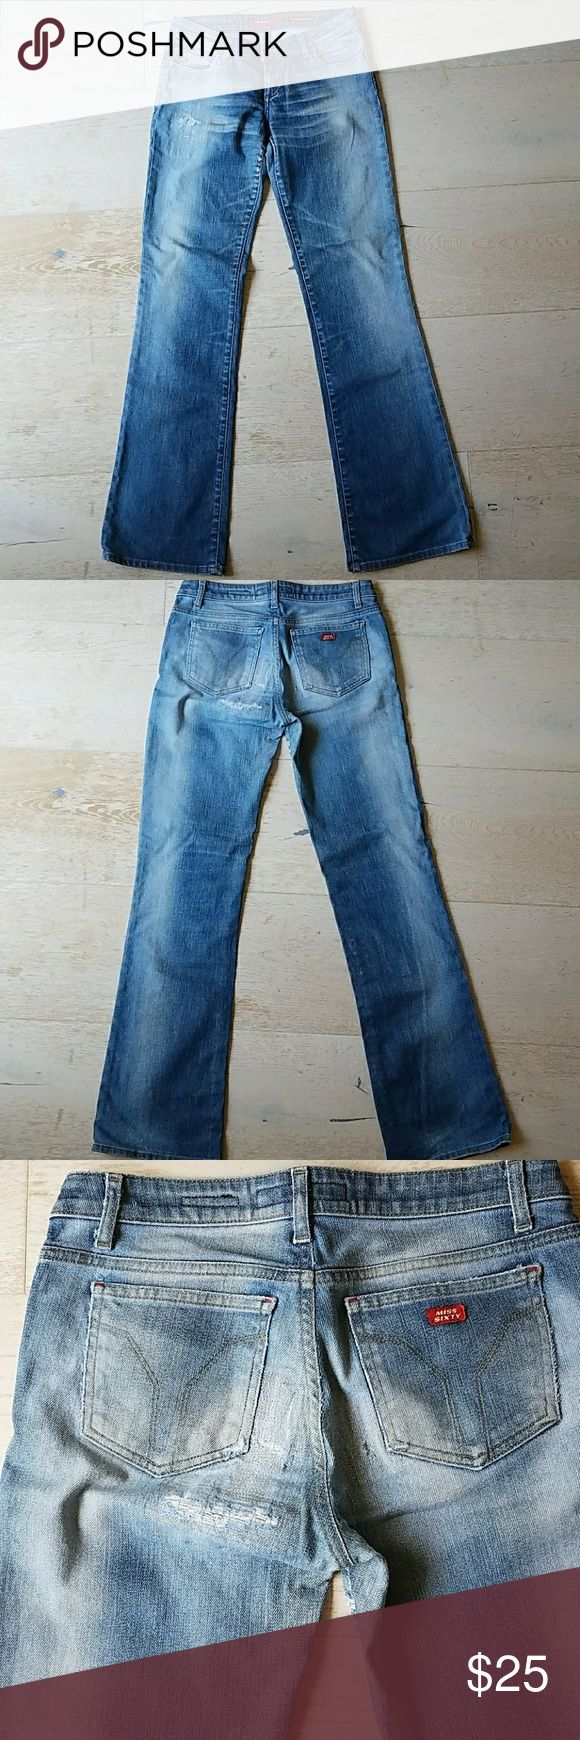 Miss Sixty Straight Tommy Jeans Italian jeans with stretch, size 29, worn in rear but perfectly patched. Miss Sixty Jeans Boot Cut